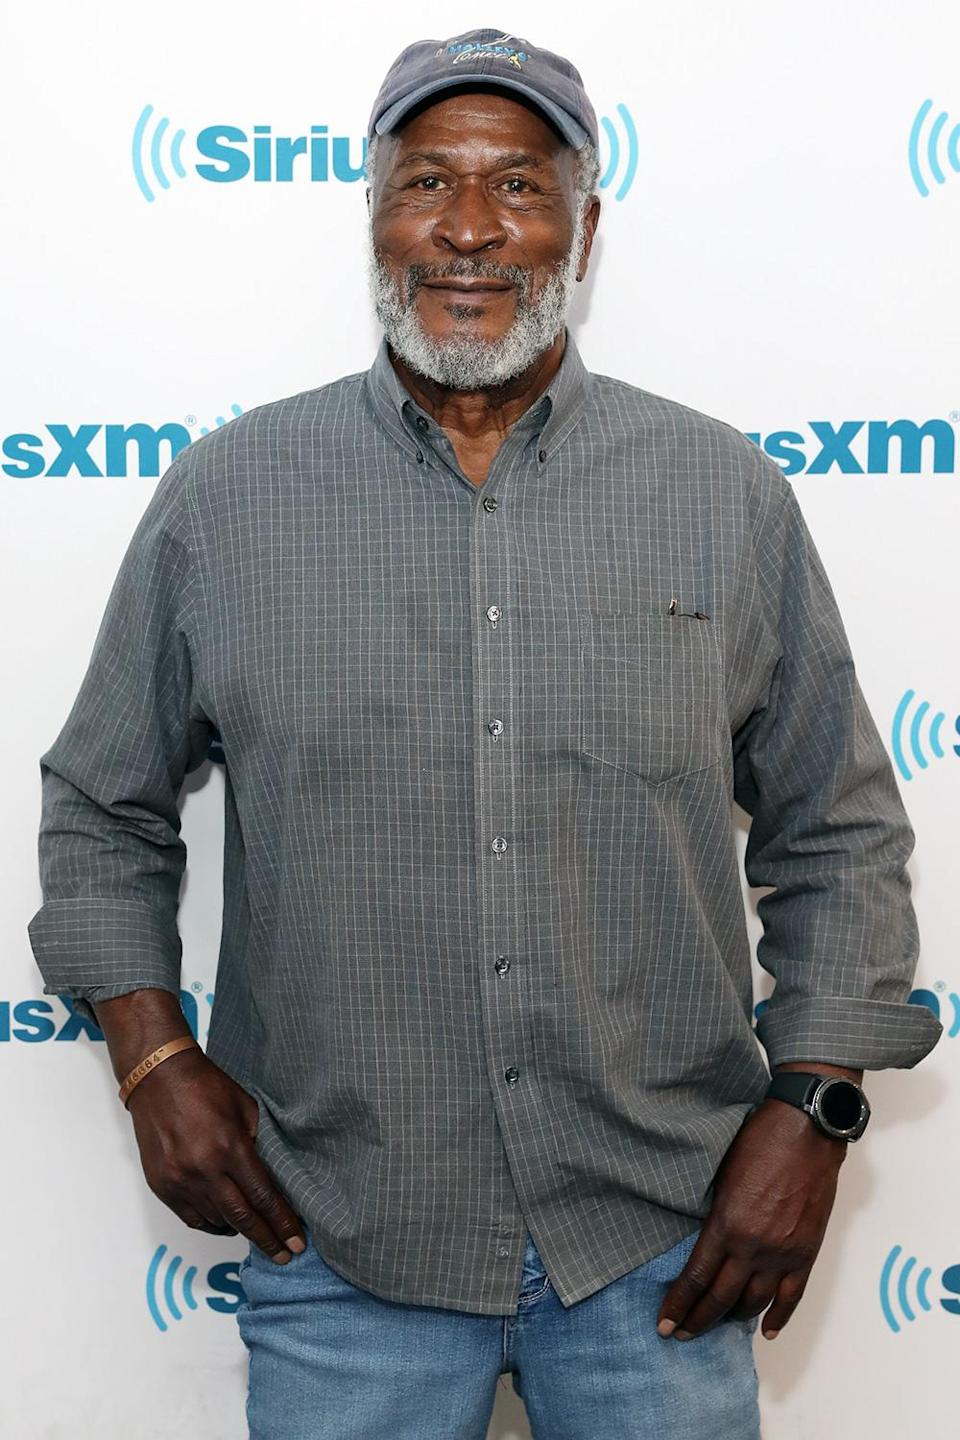 """<p>Actor John Amos once aspired to a career in football, and actually tried out for the Kansas City Chiefs twice, <a href=""""https://www.kansascity.com/entertainment/ent-columns-blogs/stargazing/article304752/Chiefs-coach-Stram-sparked-actor-John-Amos%E2%80%99-creativity.html"""" rel=""""nofollow noopener"""" target=""""_blank"""" data-ylk=""""slk:according to the Kansas City Star."""" class=""""link rapid-noclick-resp"""">according to the <em>Kansas City Star.</em></a></p>"""